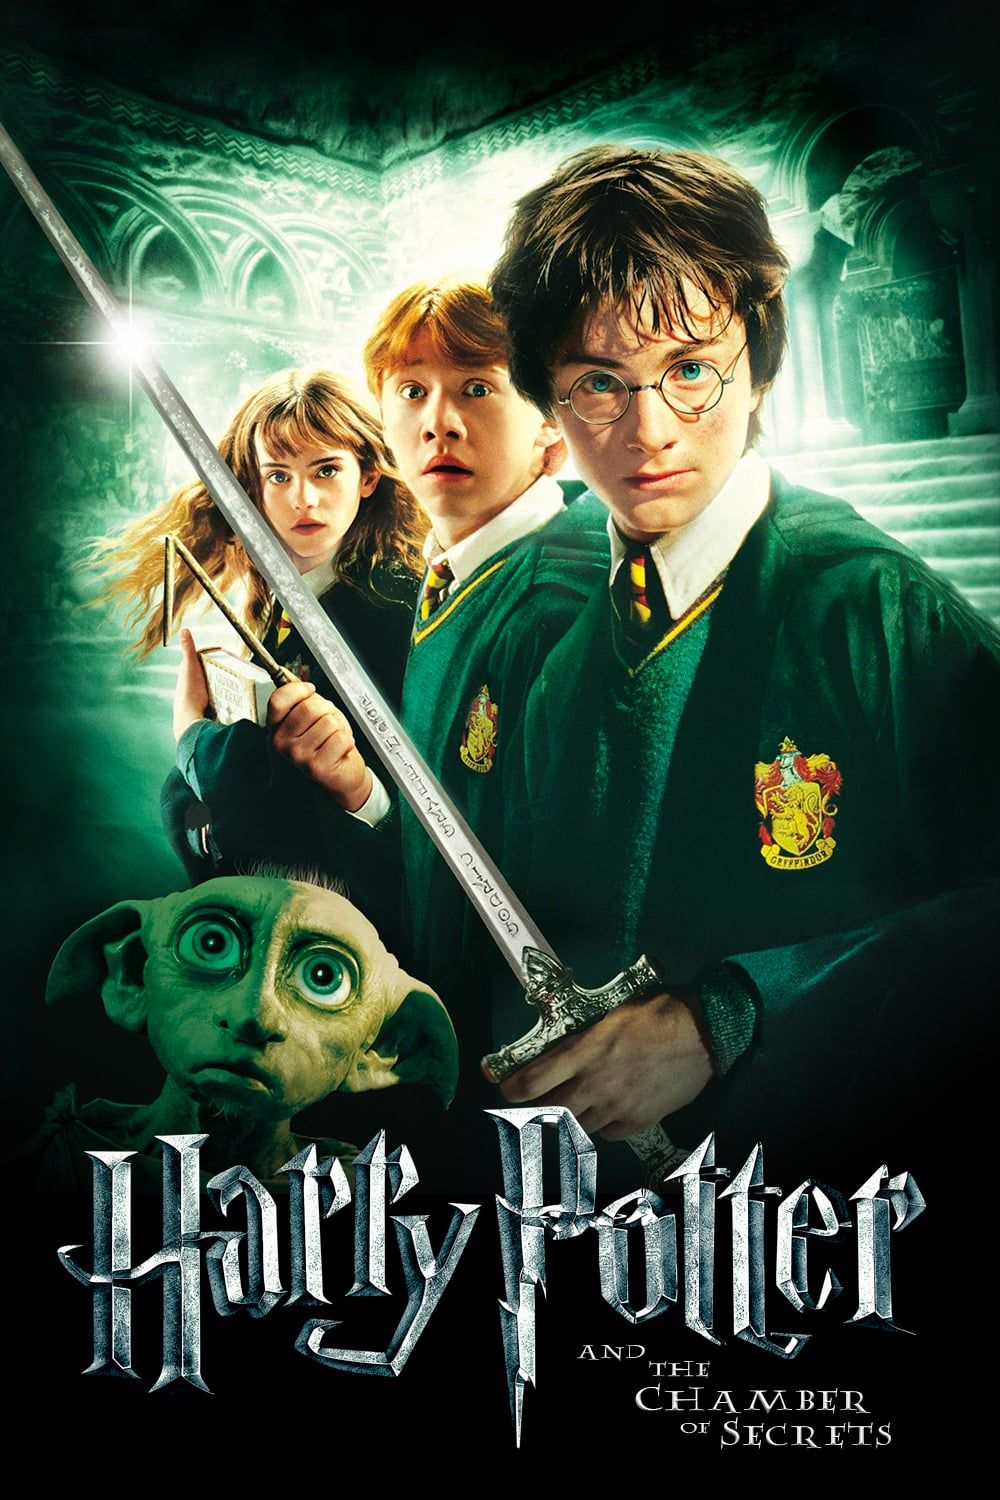 Harry Potter Movie Series Is Based On The Books With The Same Title The Books Were W Harry Potter Movie Posters Harry Potter Ron Harry Potter Ron And Hermione